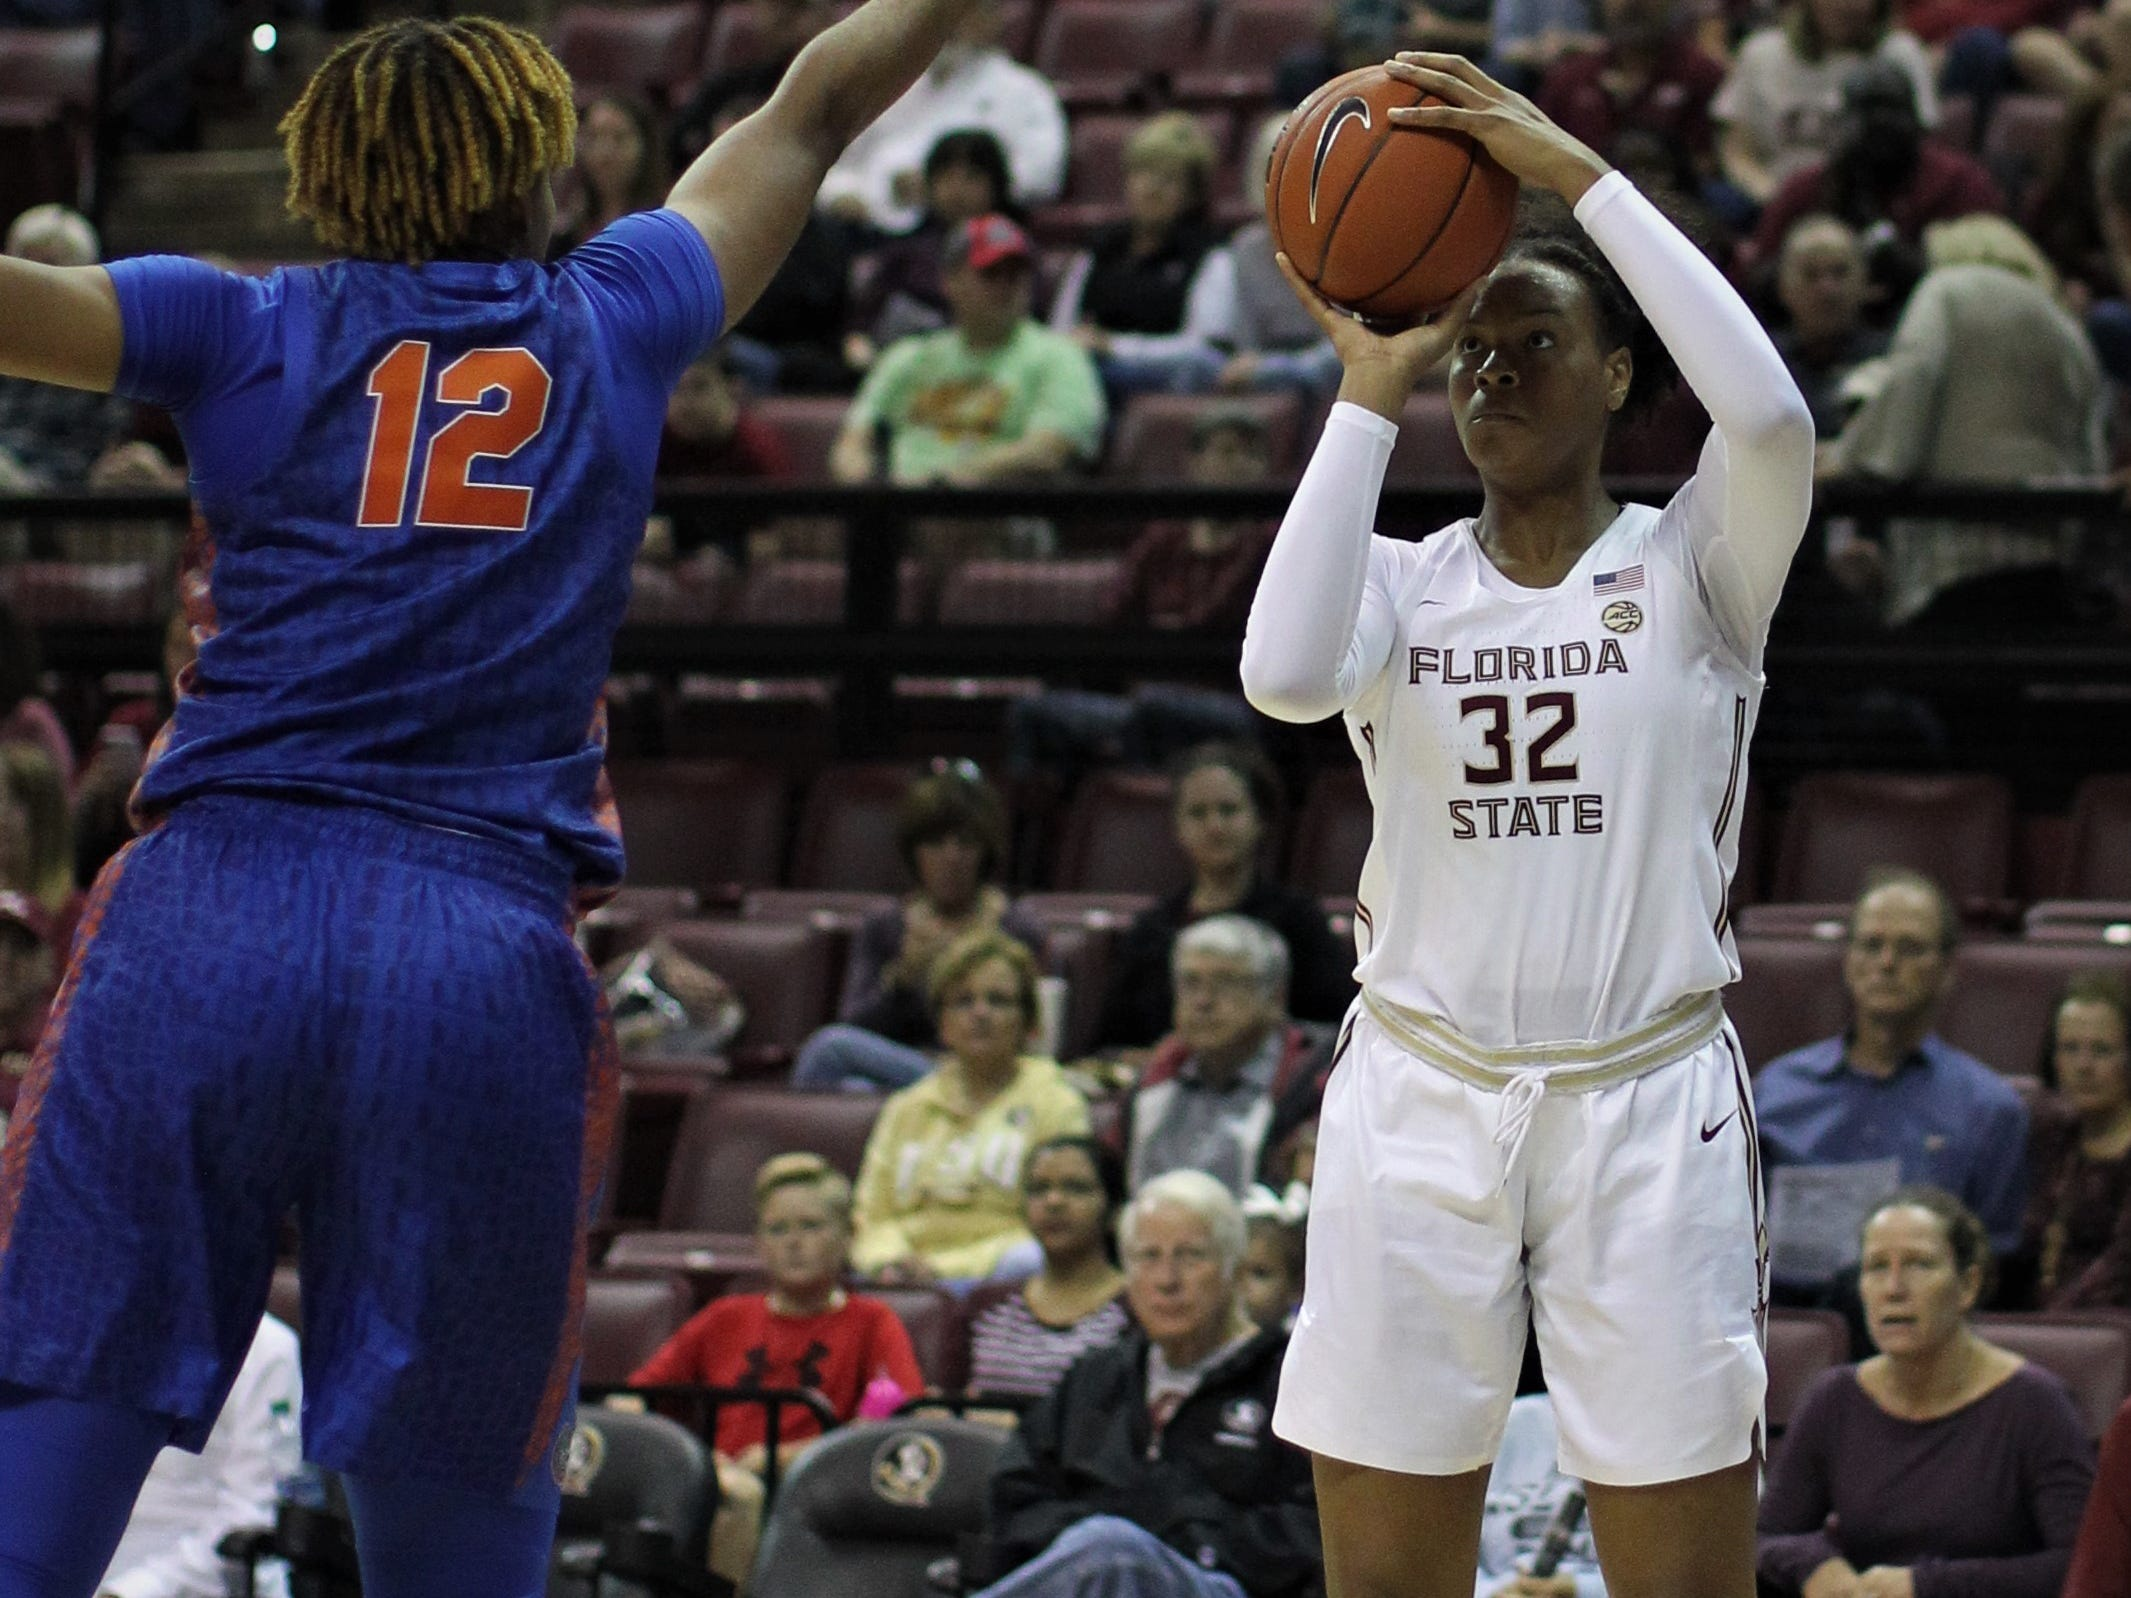 Florida State's Valencia Myers takes a jumper during the first half of the Seminoles' game against Florida at the Tucker Civic Center on Nov. 11, 2018.